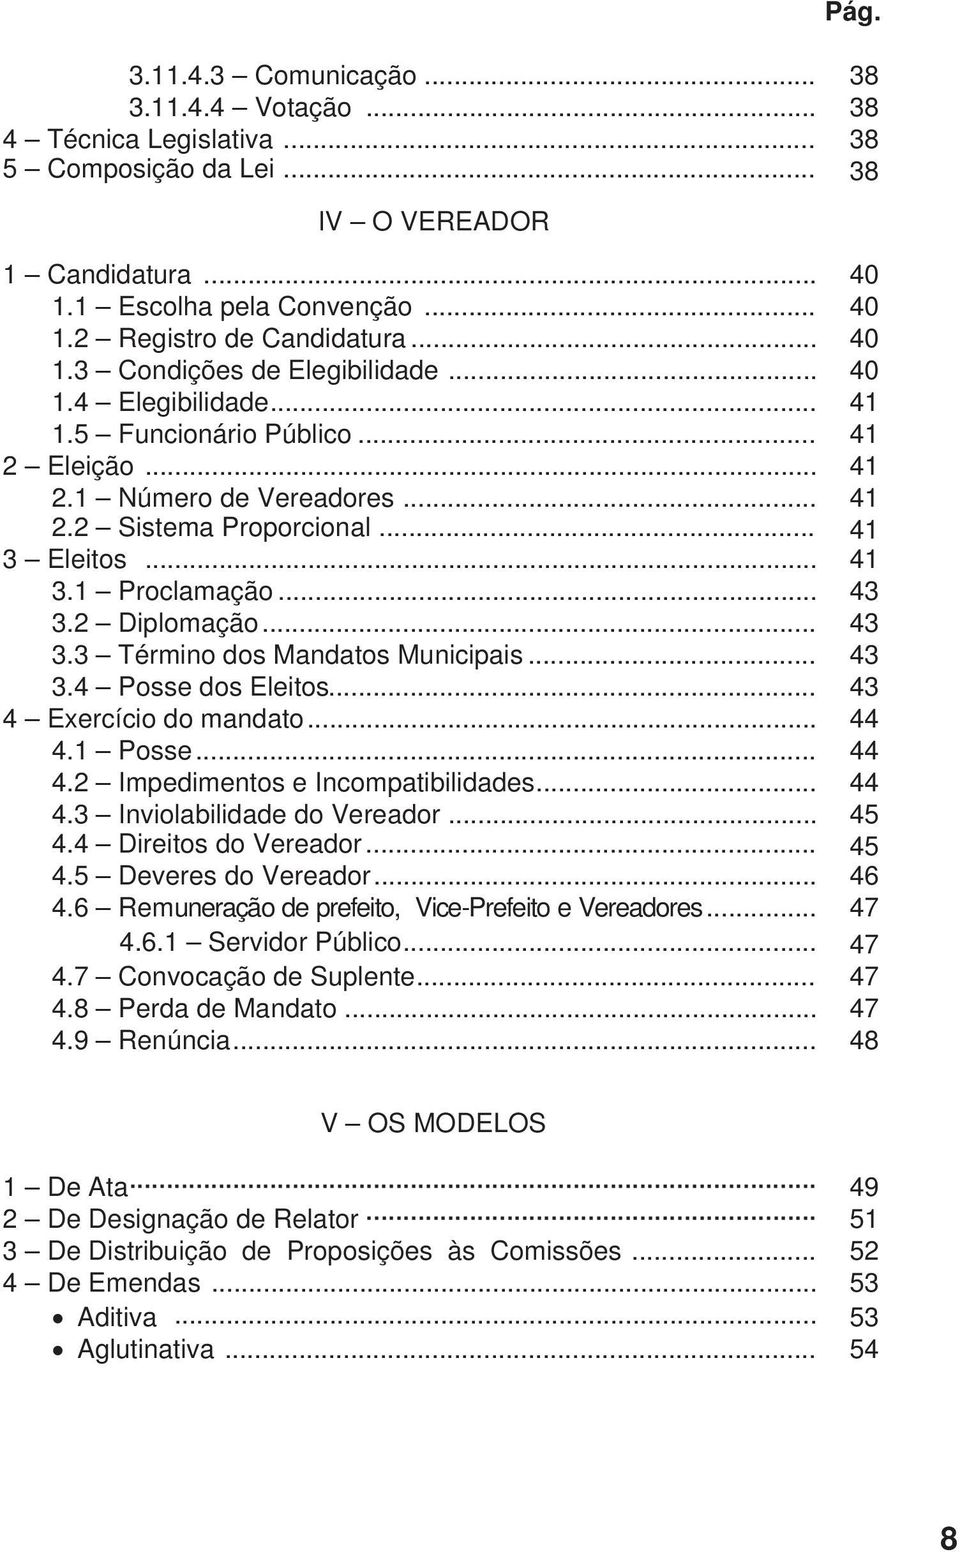 .. 43 3.2 Diplomação... 43 3.3 Término dos Mandatos Municipais... 43 3.4 Posse dos Eleitos... 43 4 Exercício do mandato... 44 4.1 Posse... 44 4.2 Impedimentos e Incompatibilidades... 44 4.3 Inviolabilidade do Vereador.